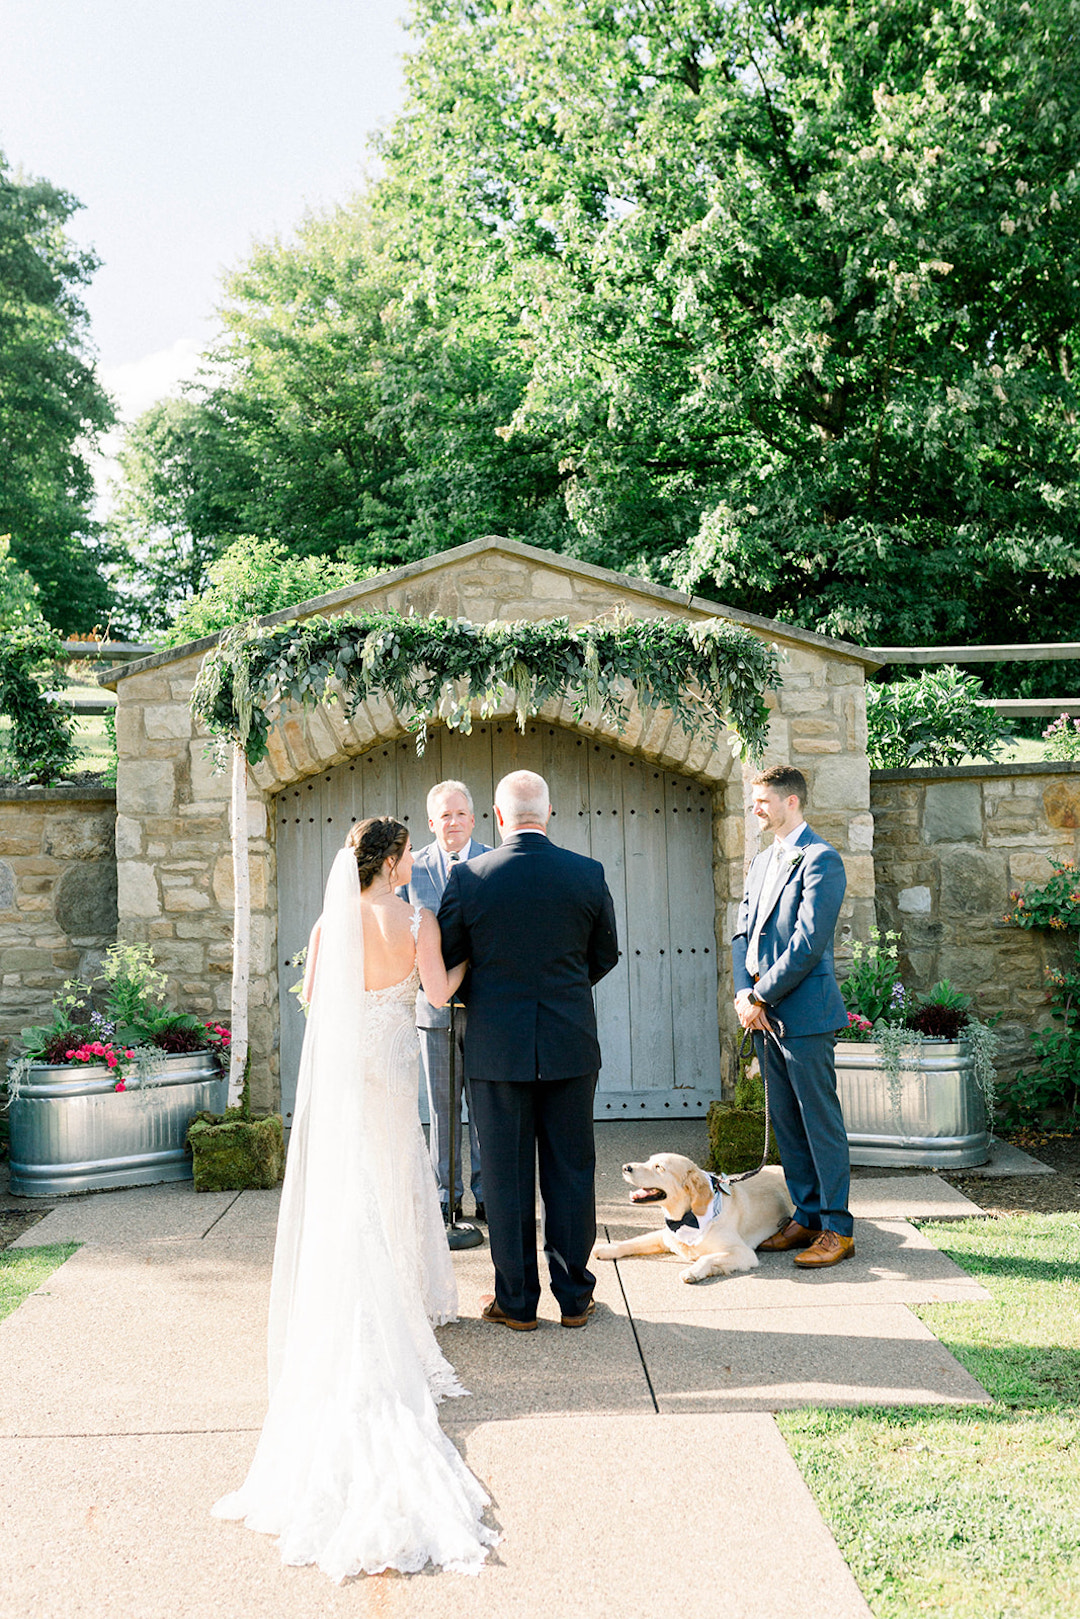 Outdoor garden wedding inspiration: Sunset wedding photos:Pittsburgh Botanic Garden wedding planned by Exhale Events. See more wedding inspiration at exhale-events.com!